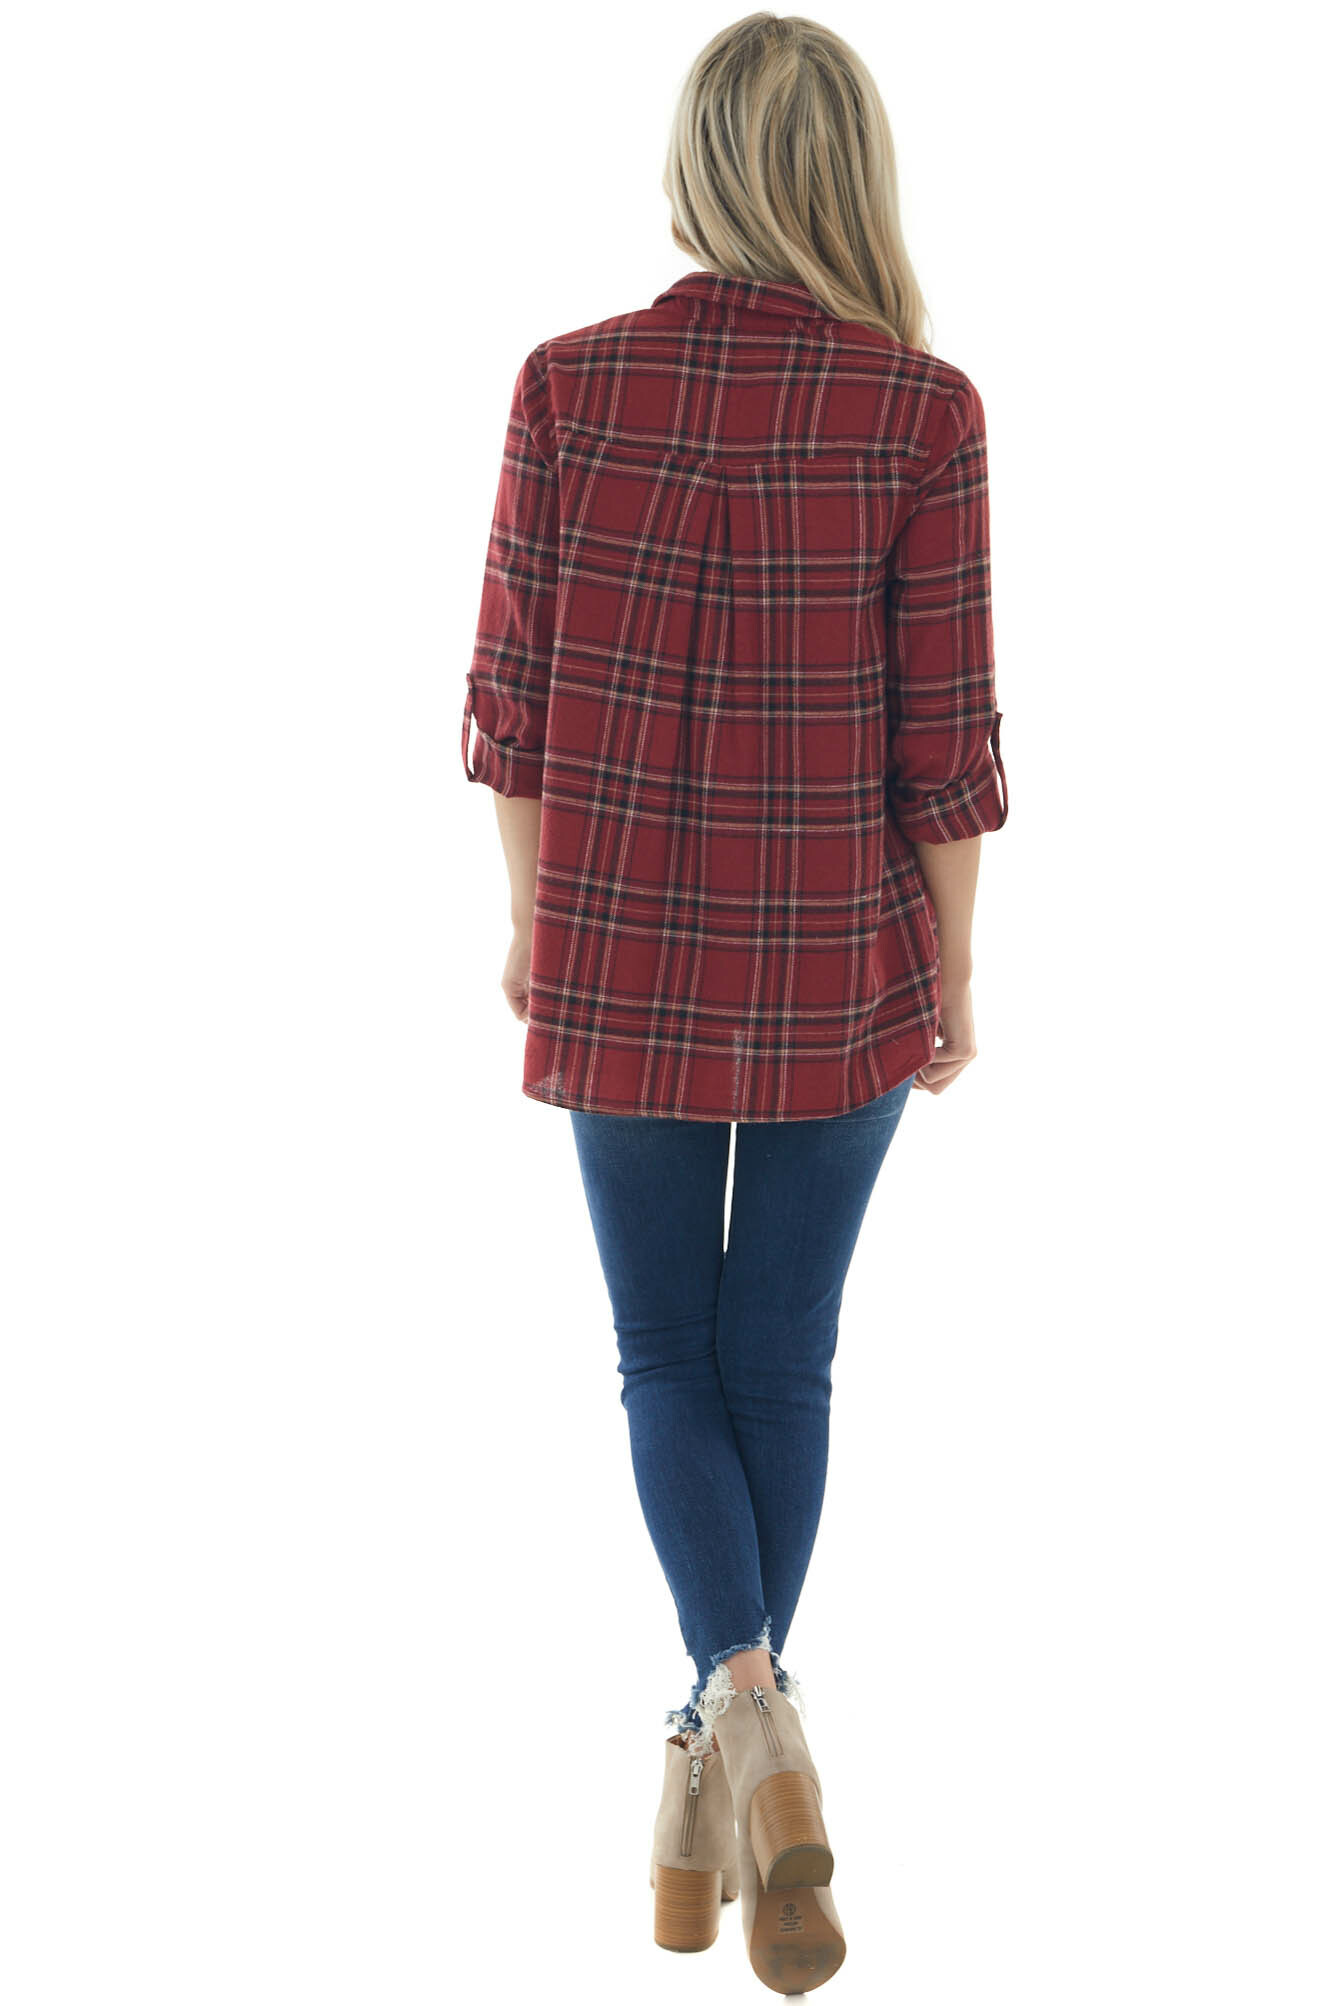 Maroon Plaid Collared Button Up Shirt